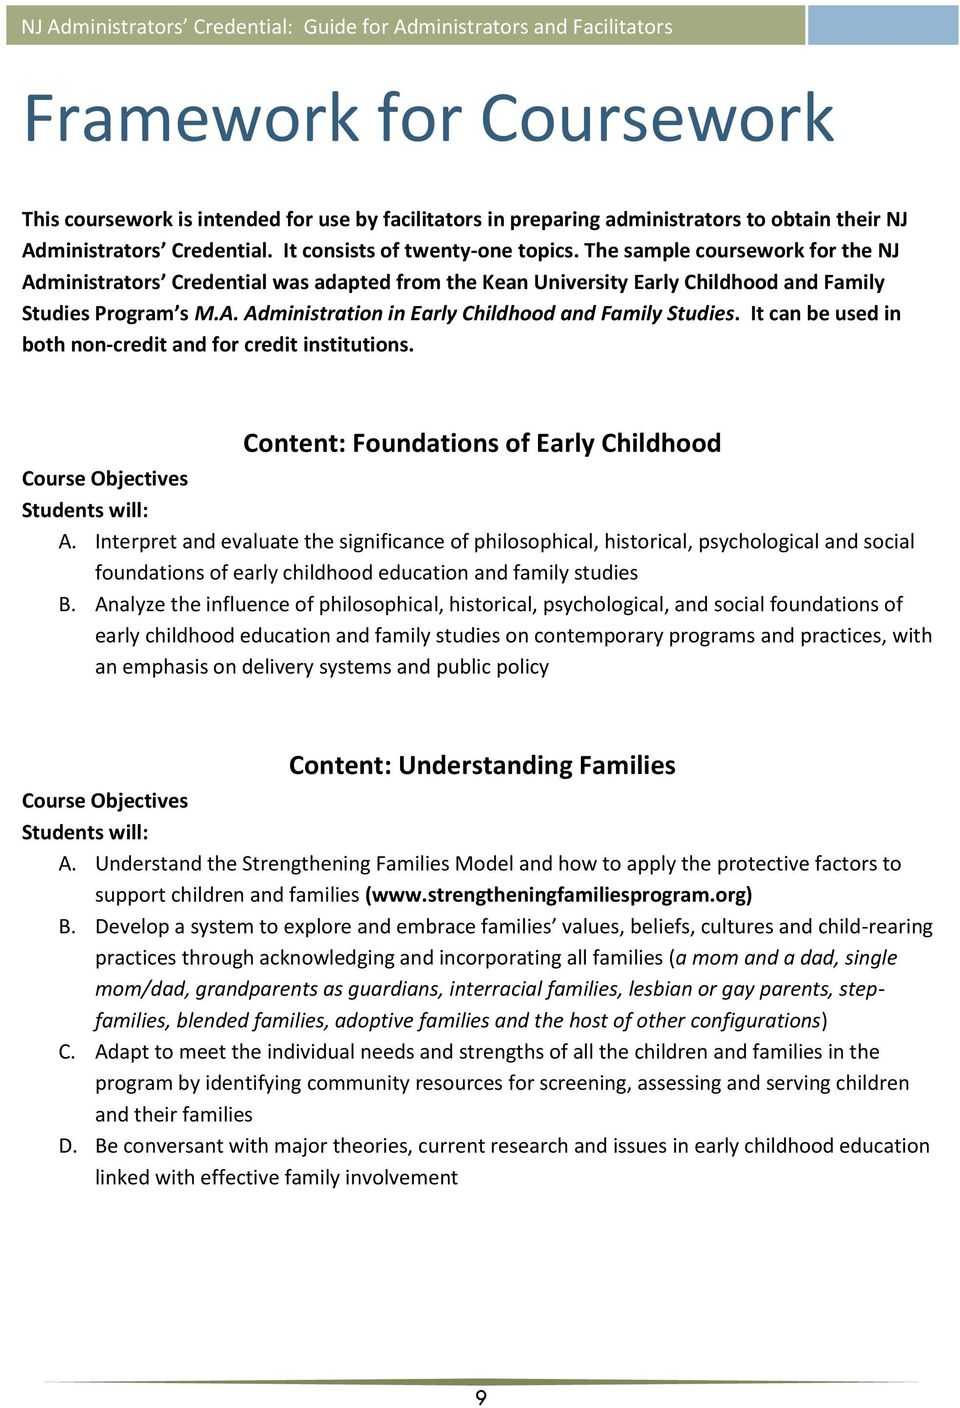 Nj Administrators Credential Guide For Administrators And